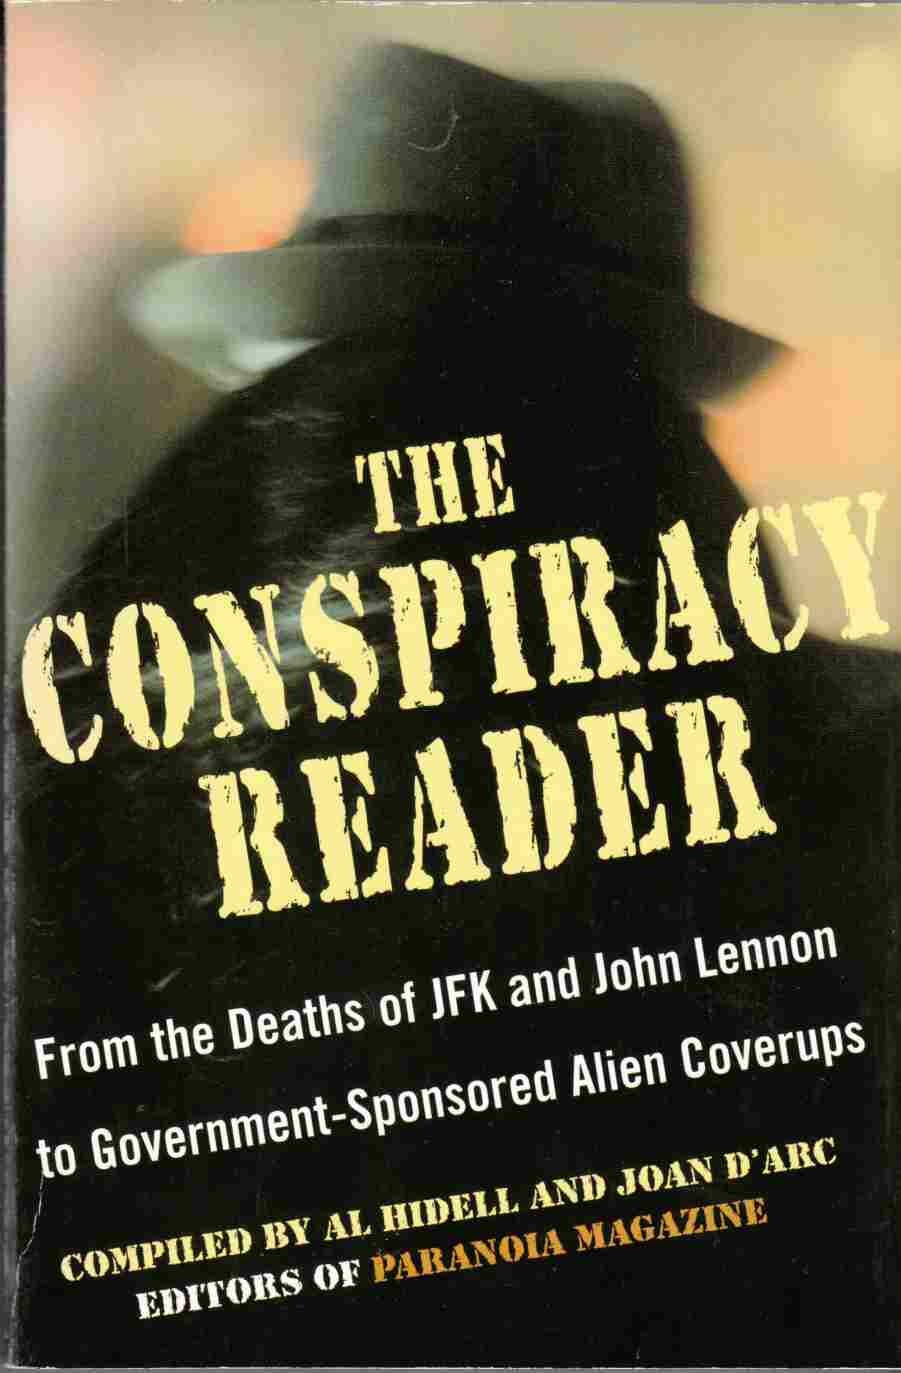 Image for The Conspiracy Reader:  From the Deaths of JFK and John Lennon to Government-Sponsored Alien Coverups